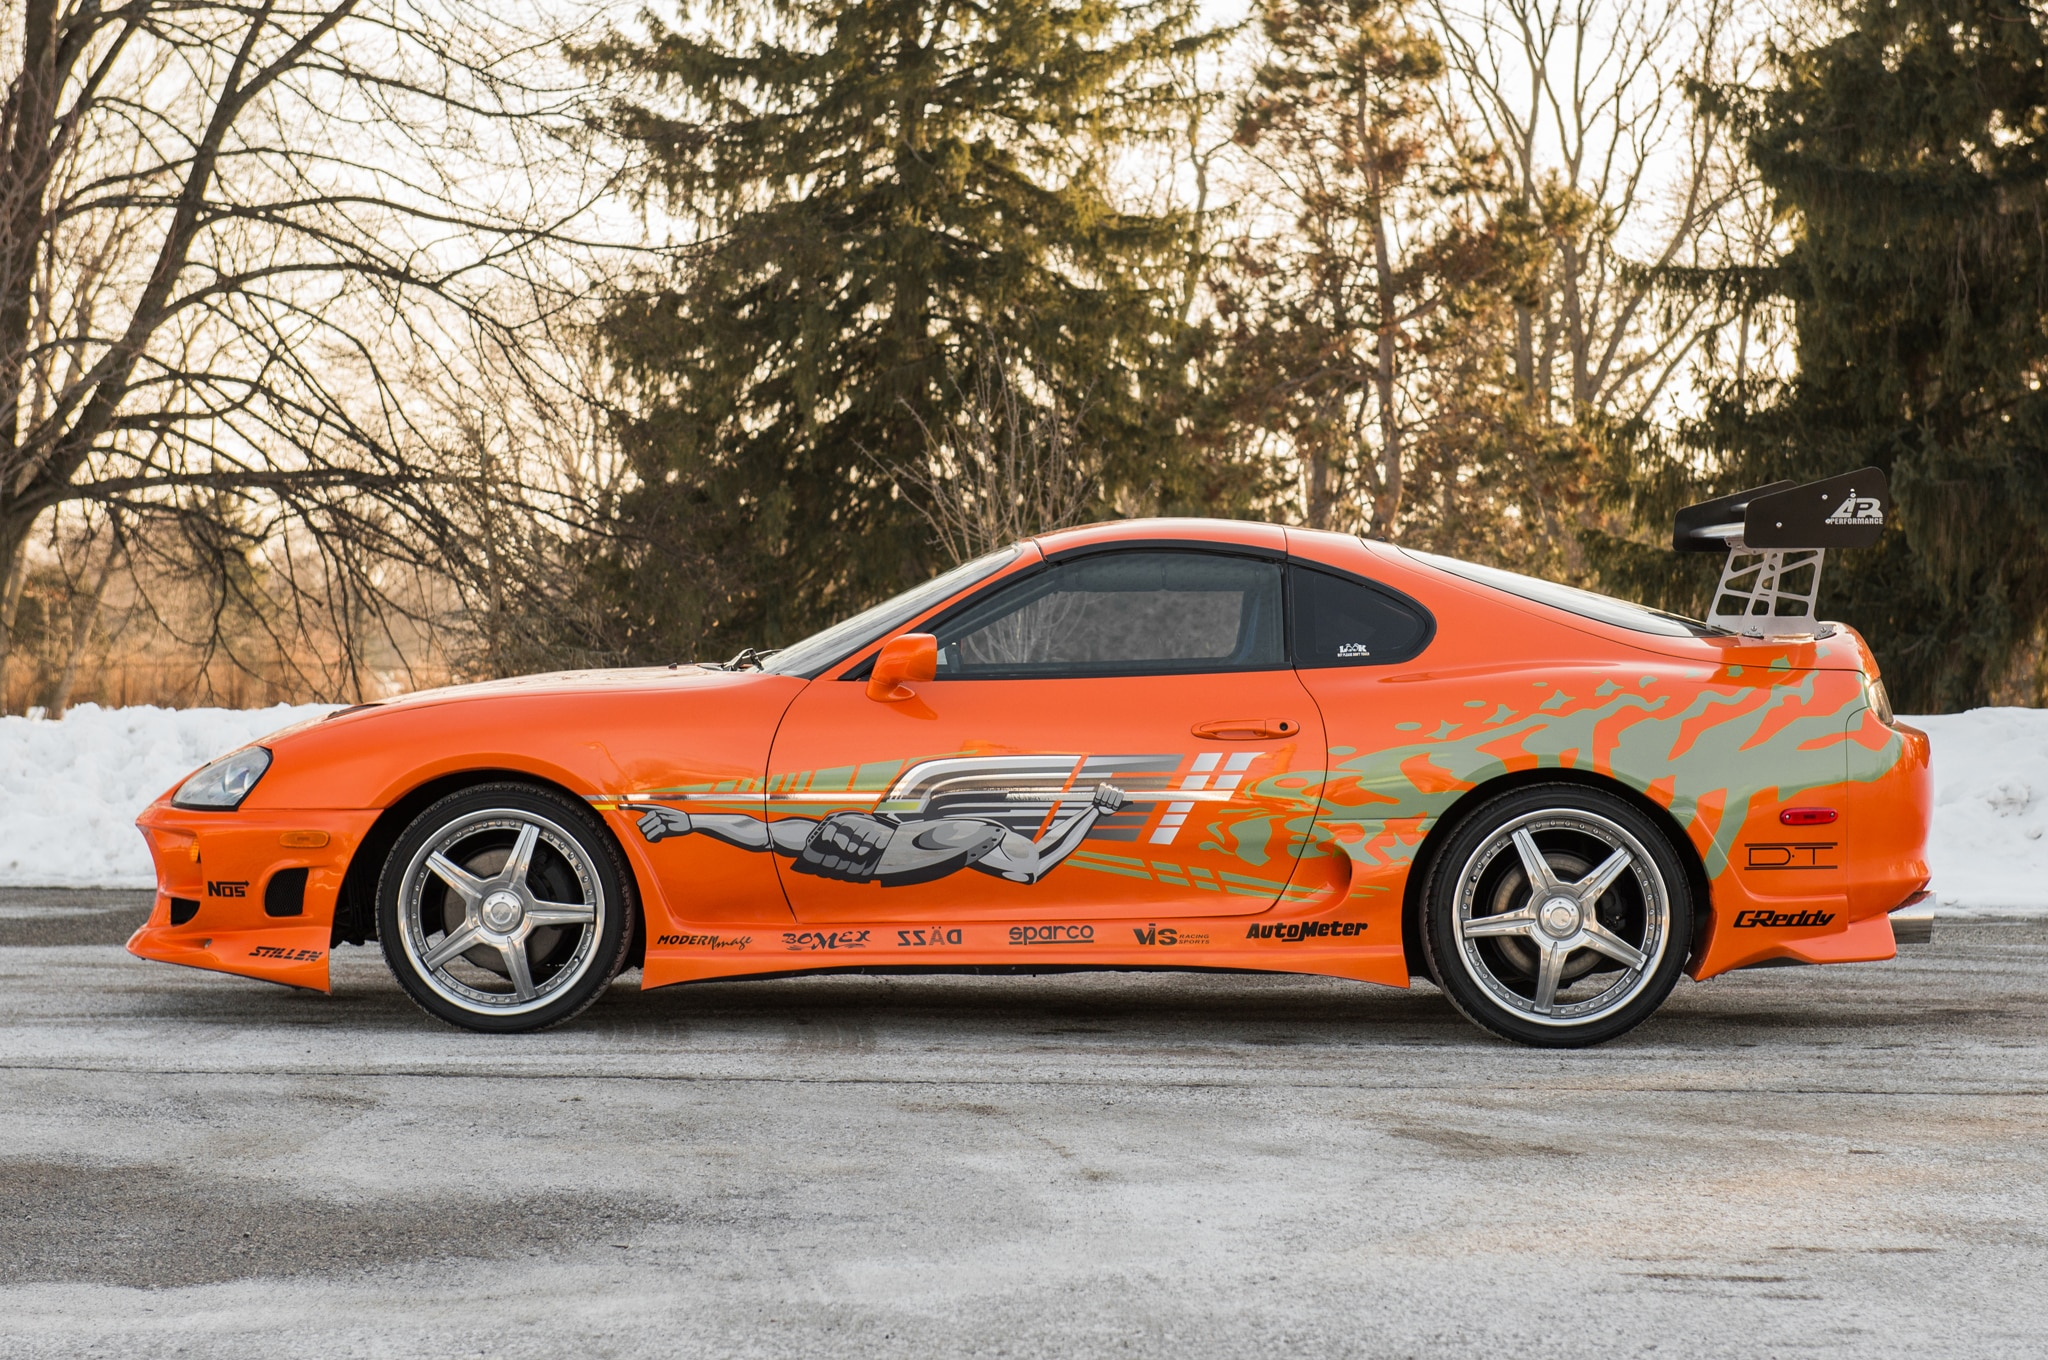 """Renders Bring Cars from """"The Fast and the Furious"""" Up to Date 